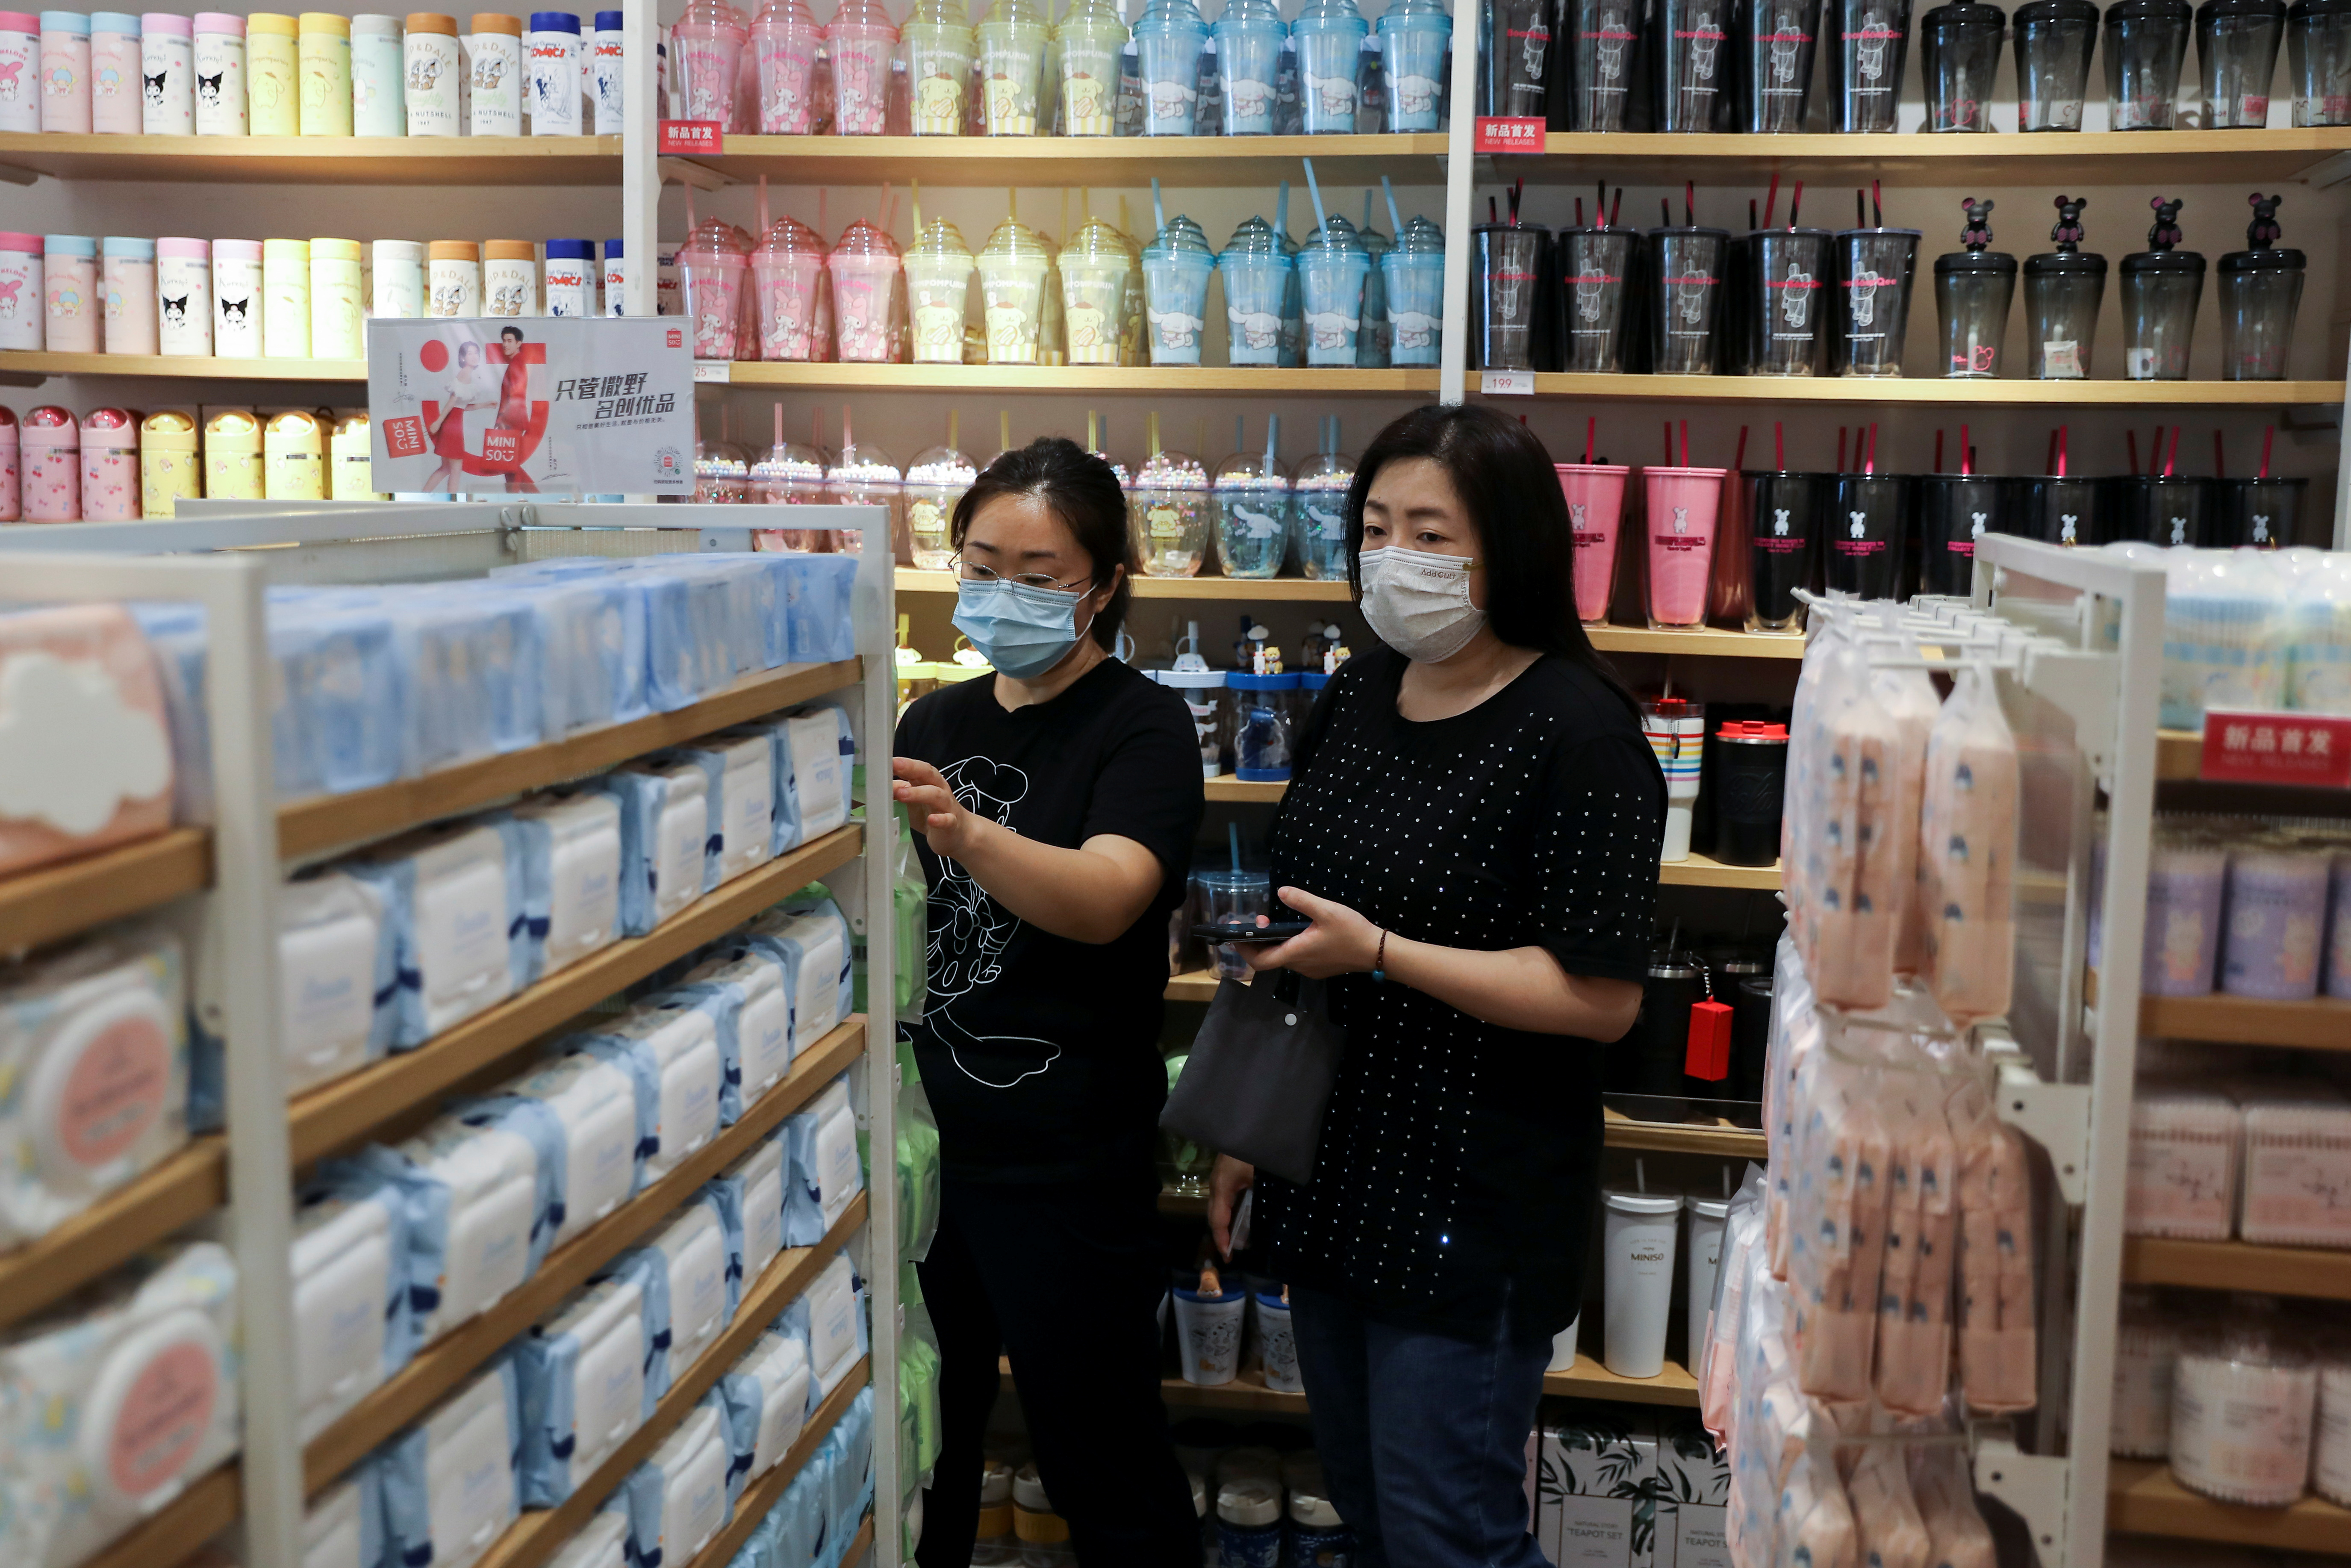 Customers shop at a store of Chinese retailer MINISO Group in Beijing, China September 13, 2021. REUTERS/Tingshu Wang